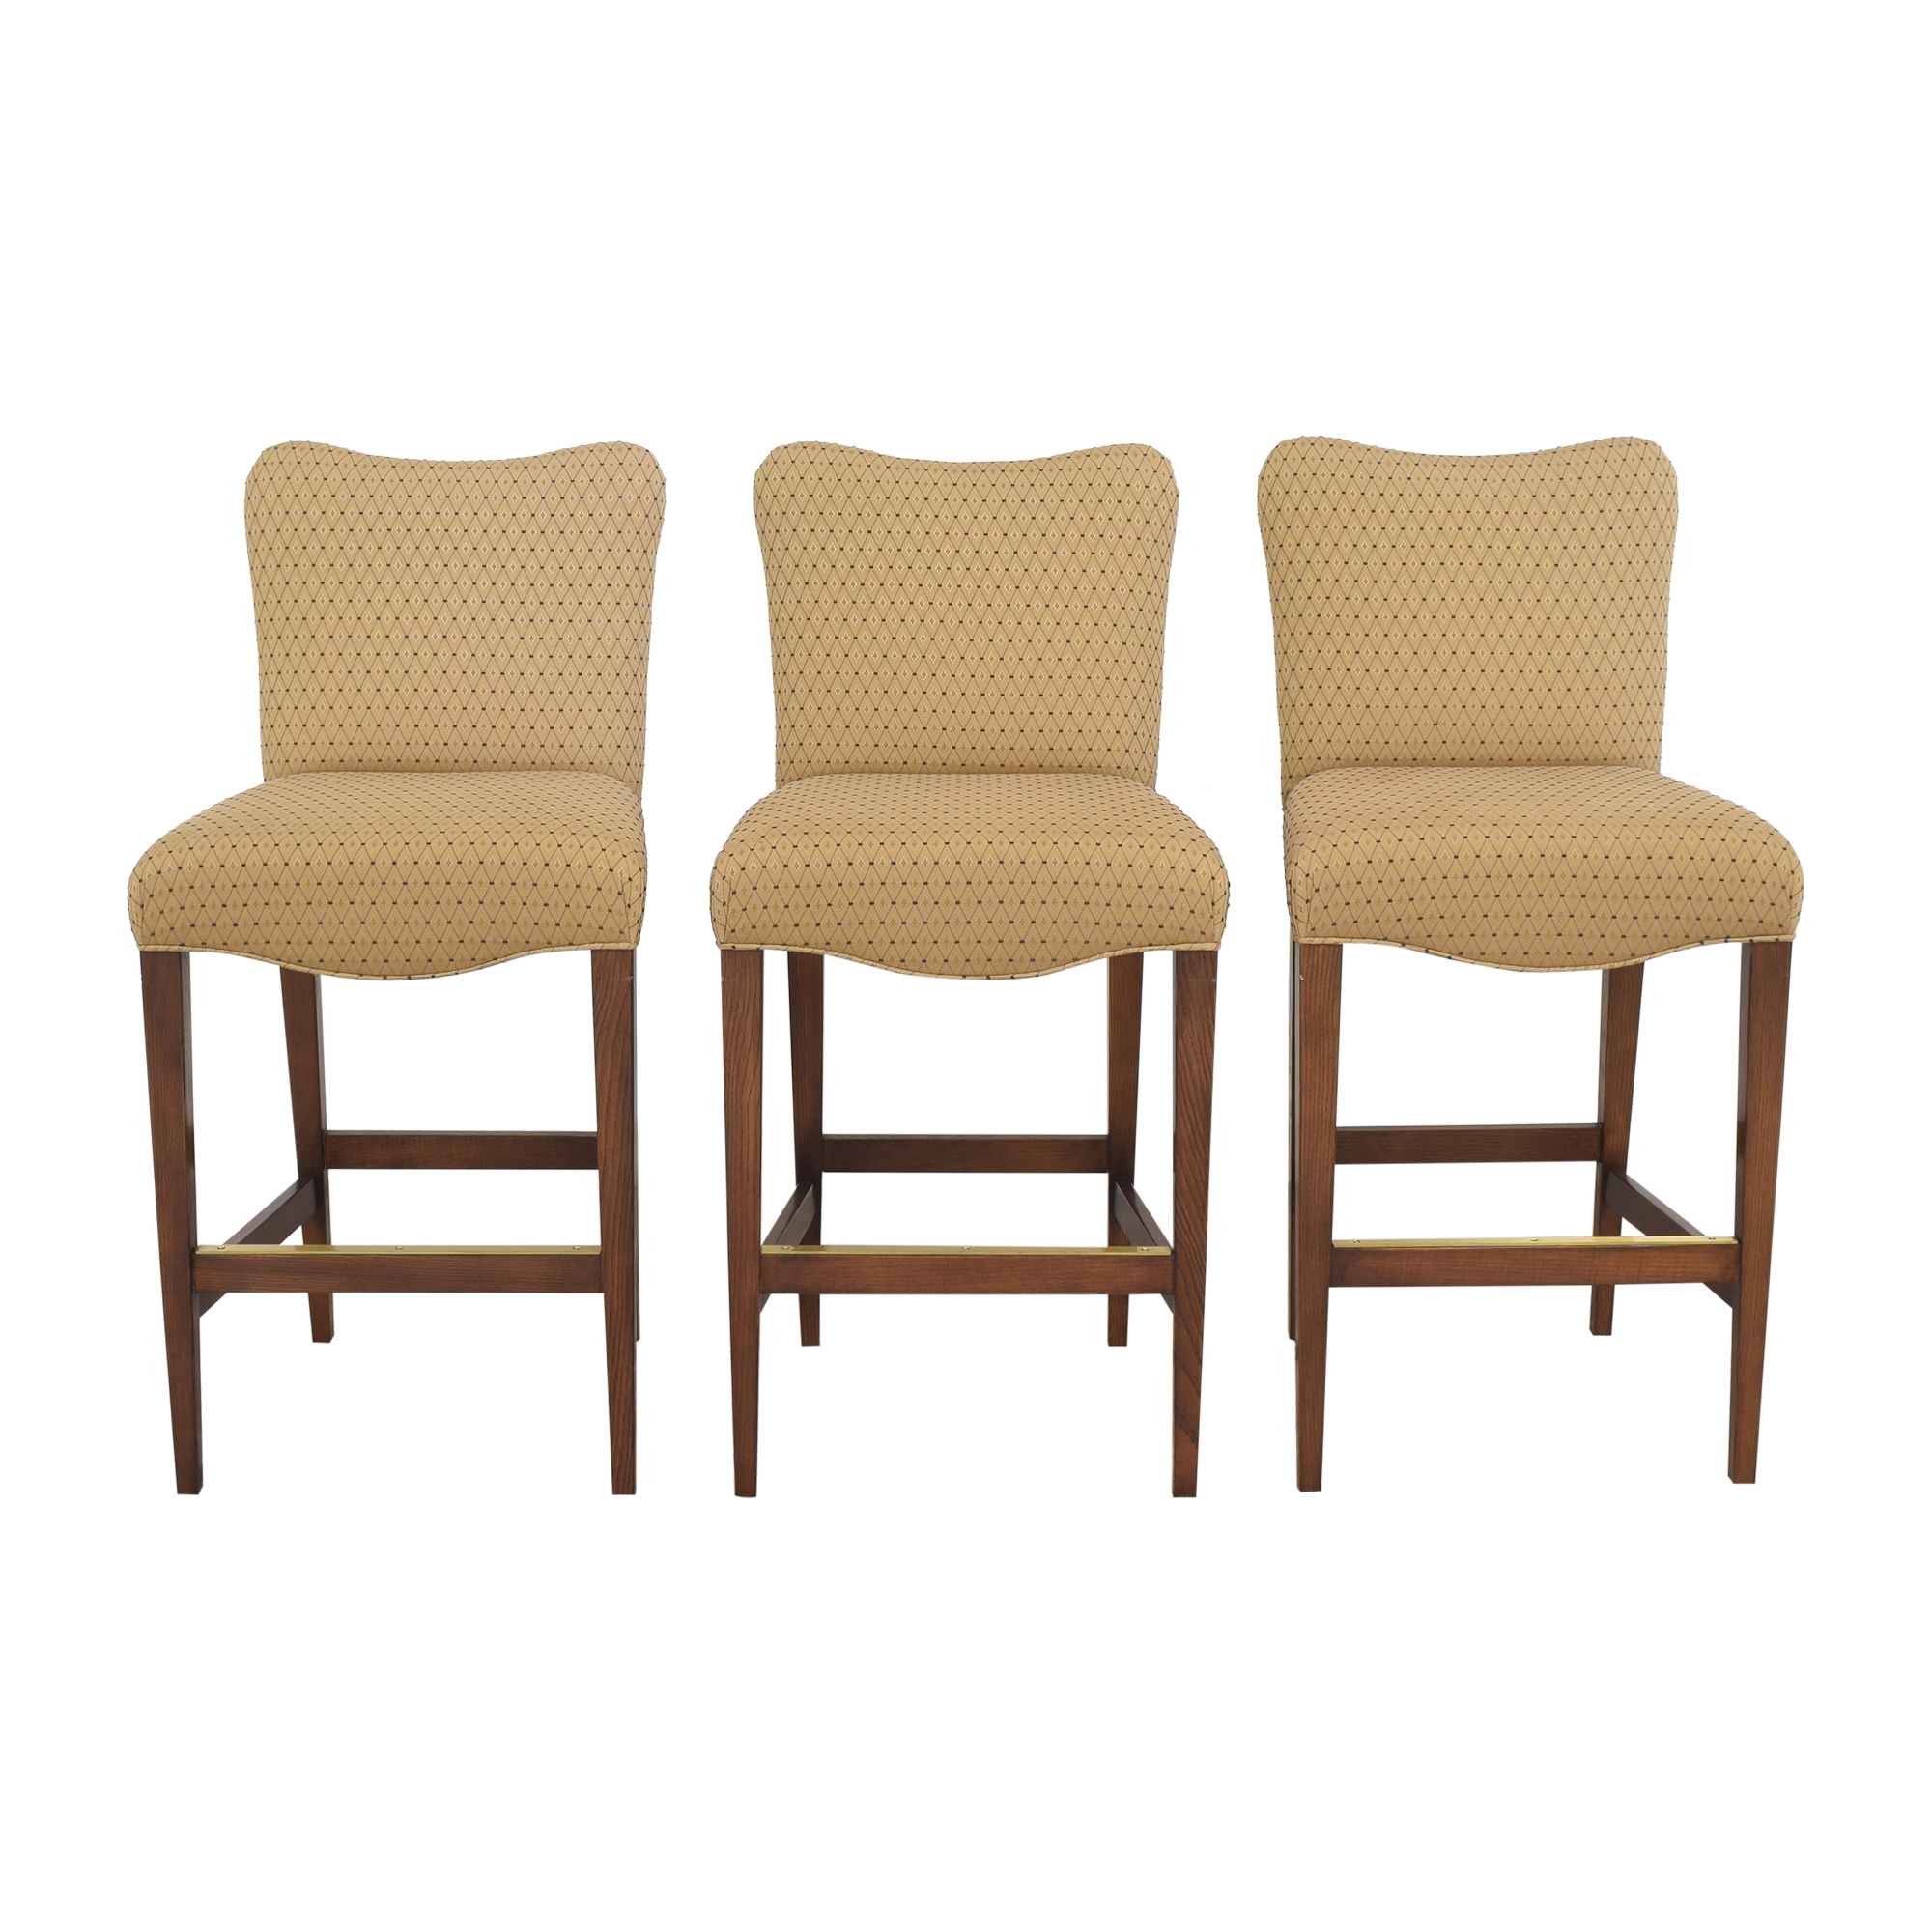 Swaim Swaim Upholstered Bar Stools ct